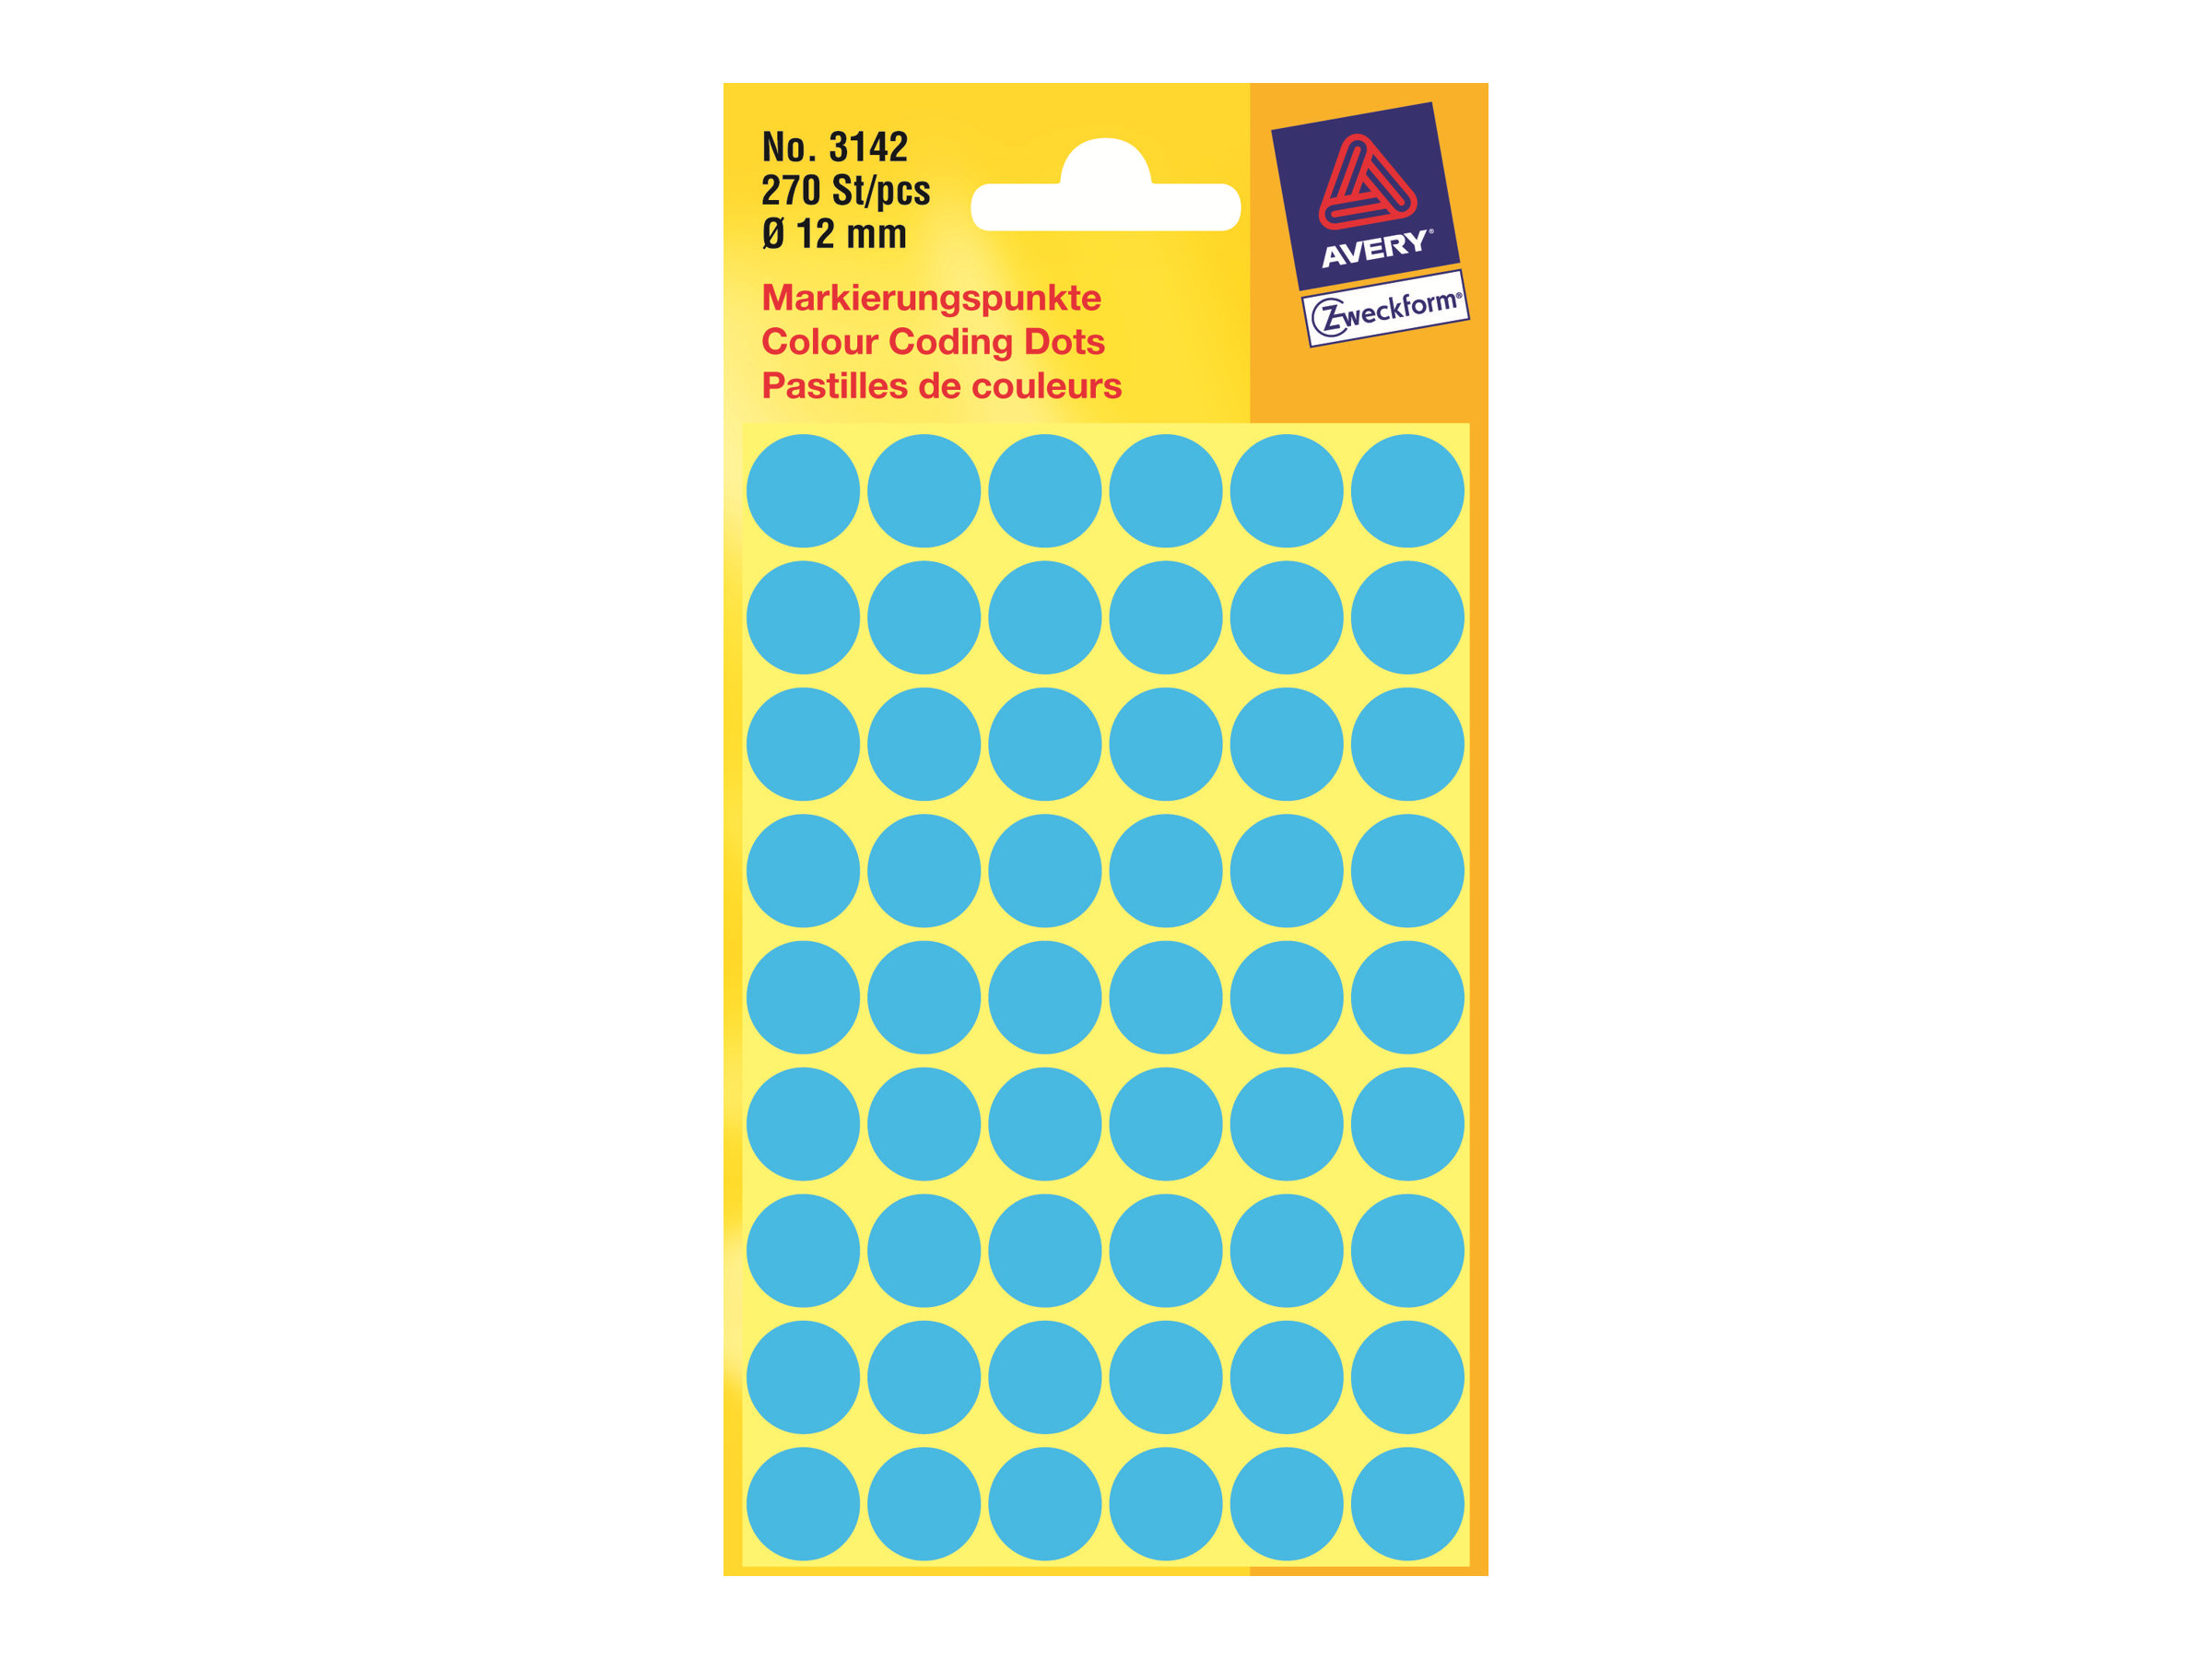 Avery Zweckform Colour Coding Dots 3142